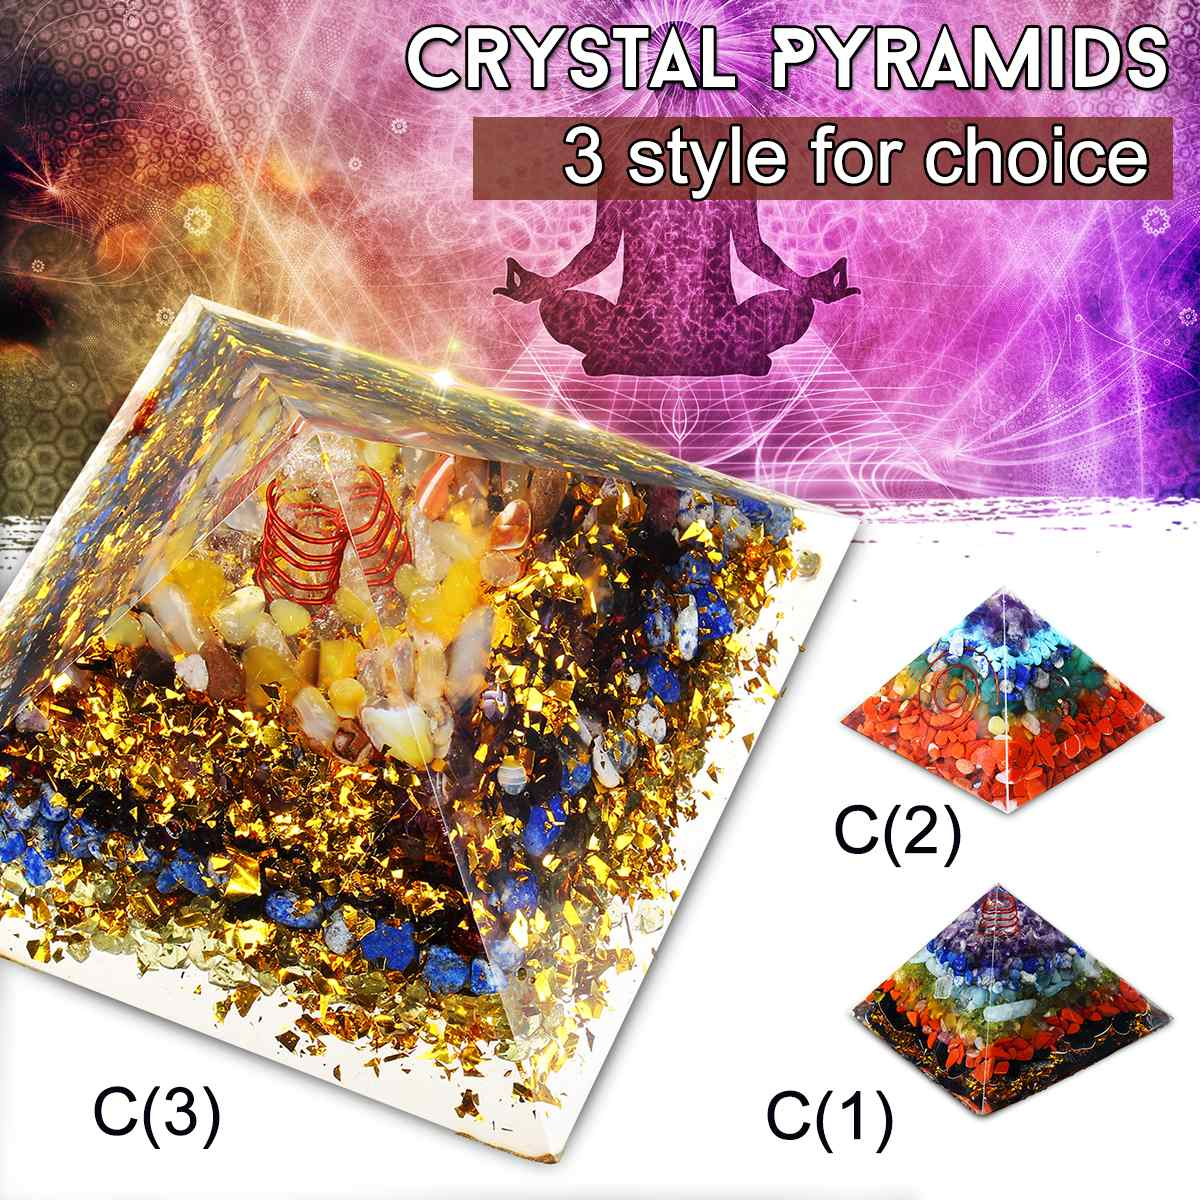 90x90x75mm Reiki Healing Orgonite Pyramid Energy Converter Orgone Accumulator Stone That Changes The Magnetic Field Of Life90x90x75mm Reiki Healing Orgonite Pyramid Energy Converter Orgone Accumulator Stone That Changes The Magnetic Field Of Life